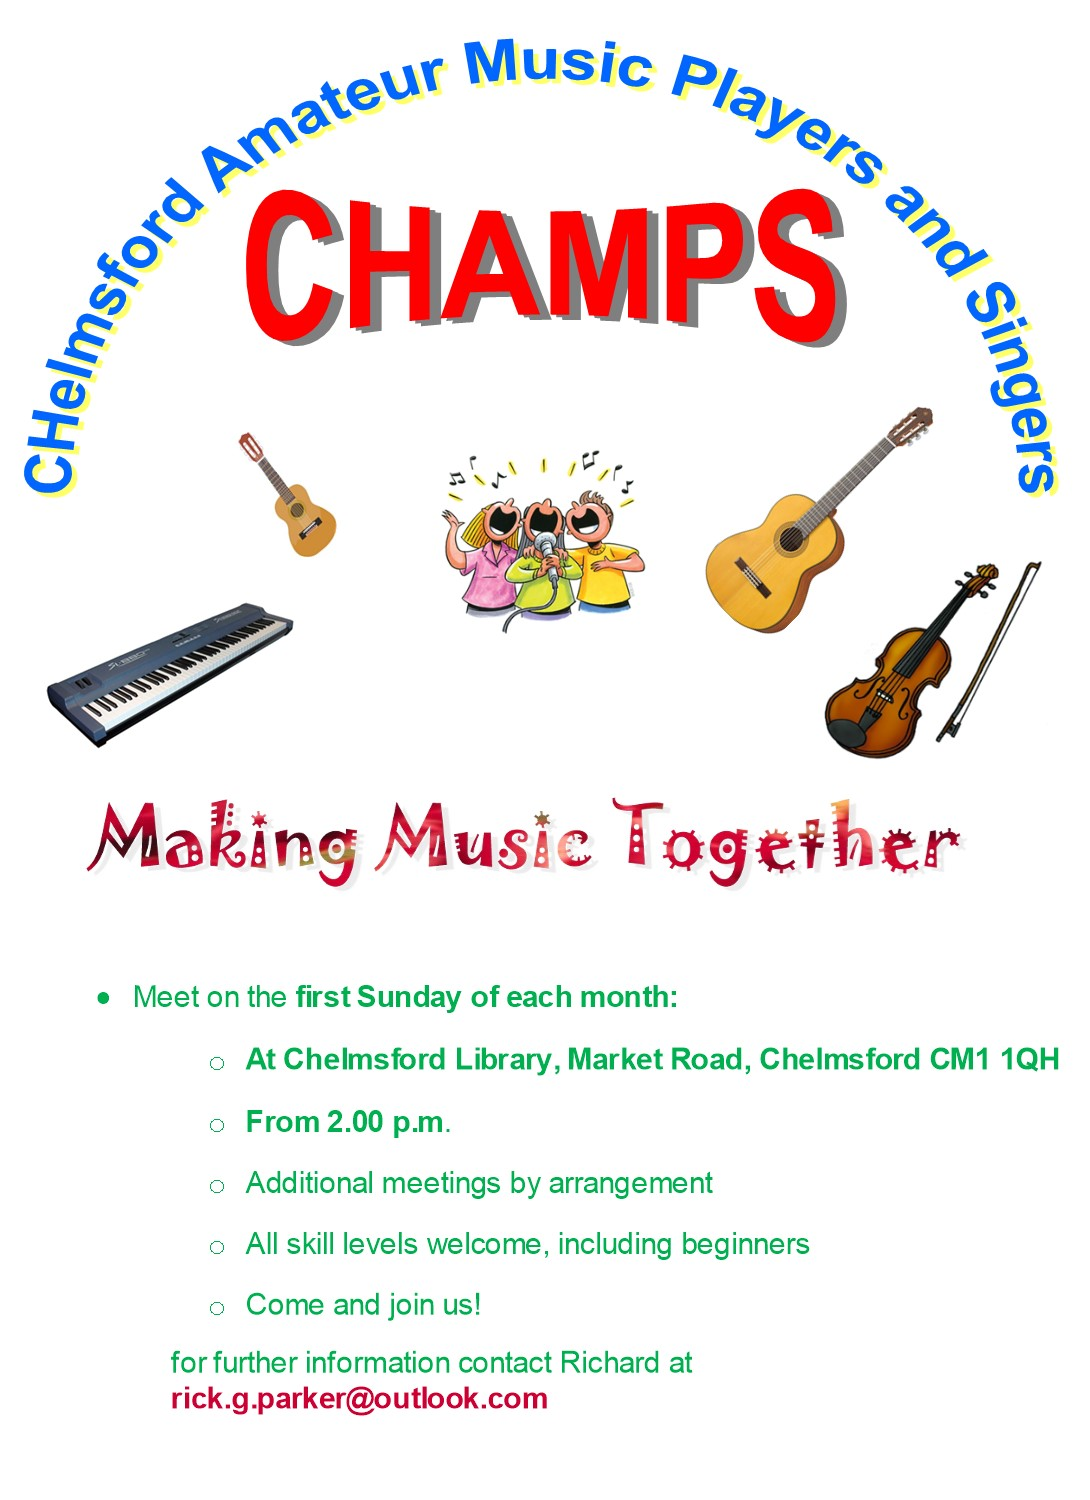 Chelmsford Amateur Music Players and Singers (CHAMPS) will be performing a charity evening on Wednesday 3rd July at the Summer Festival from 8pm.